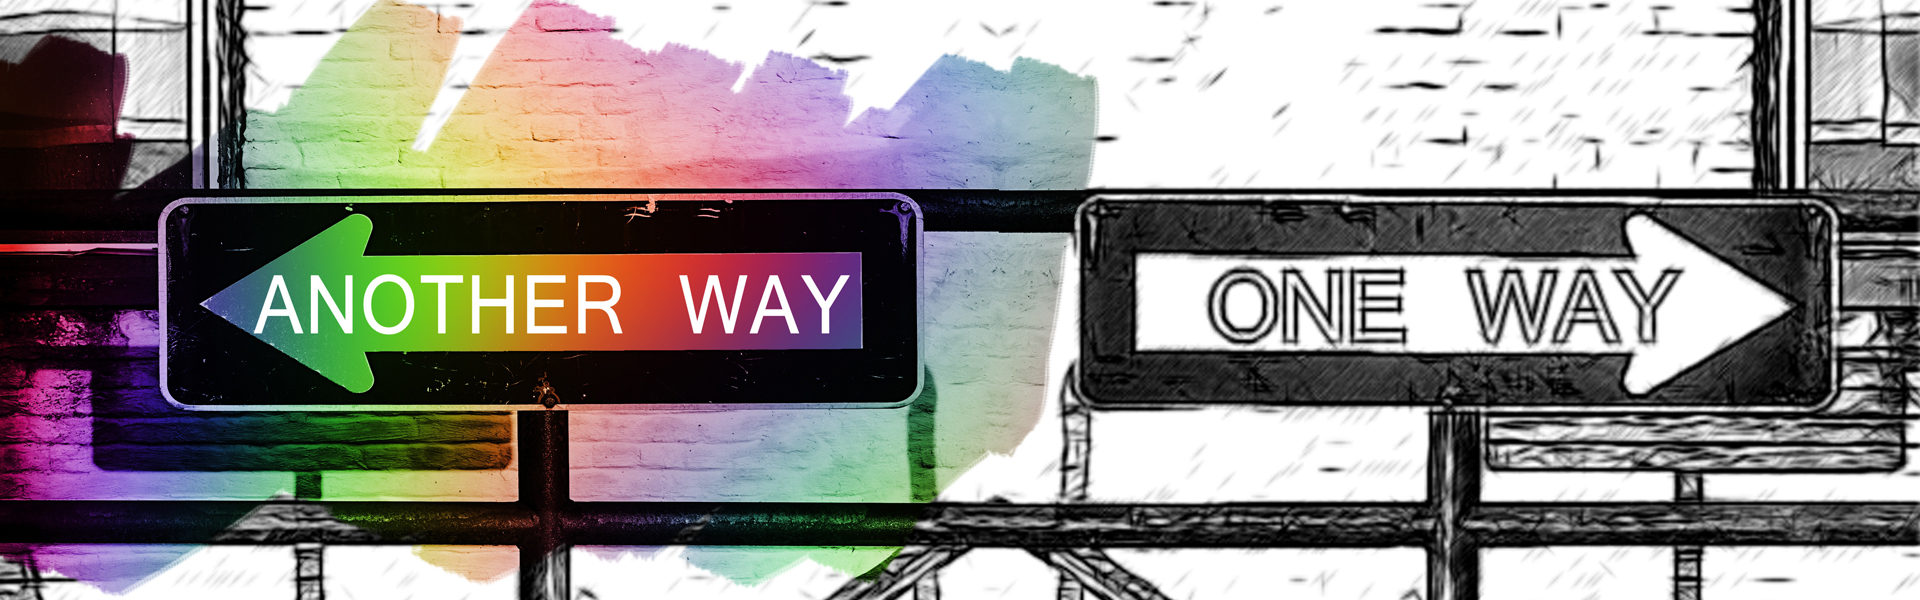 One way another way Qualitar banner image